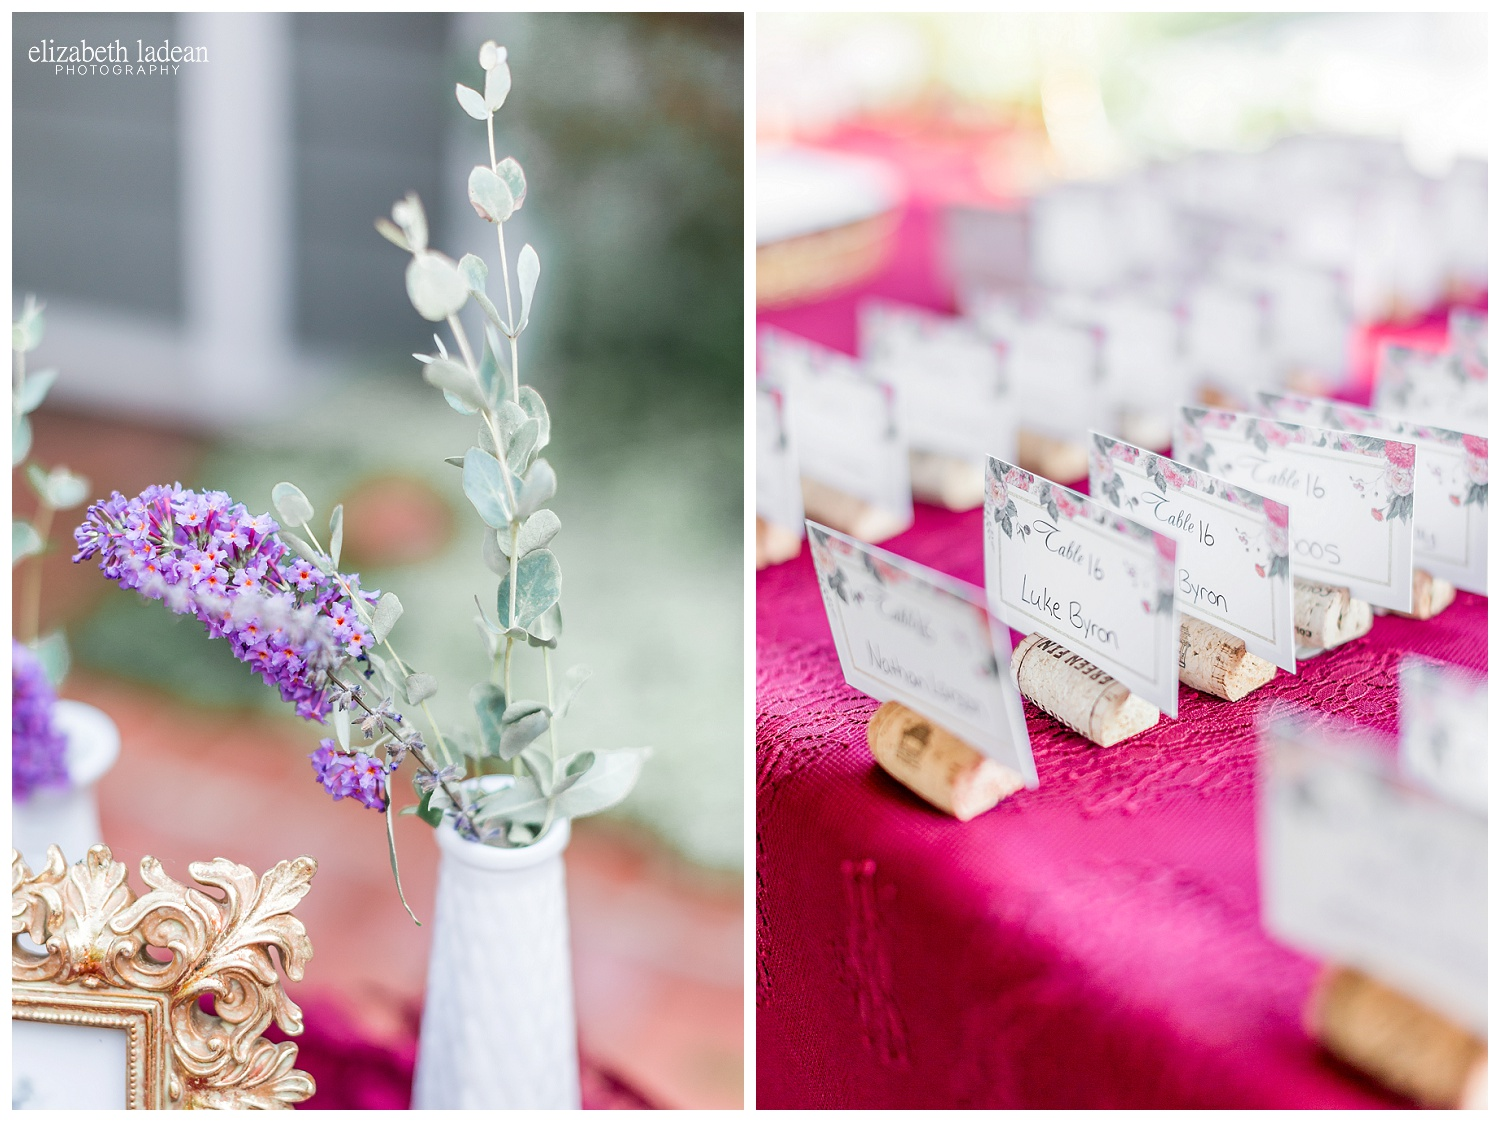 Burgundy-and-Gold-Wedding-Kansas-City-The-Legacy-at-Green-Hills-M+T0902-Elizabeth-Ladean-Photography-photo-_2331.jpg